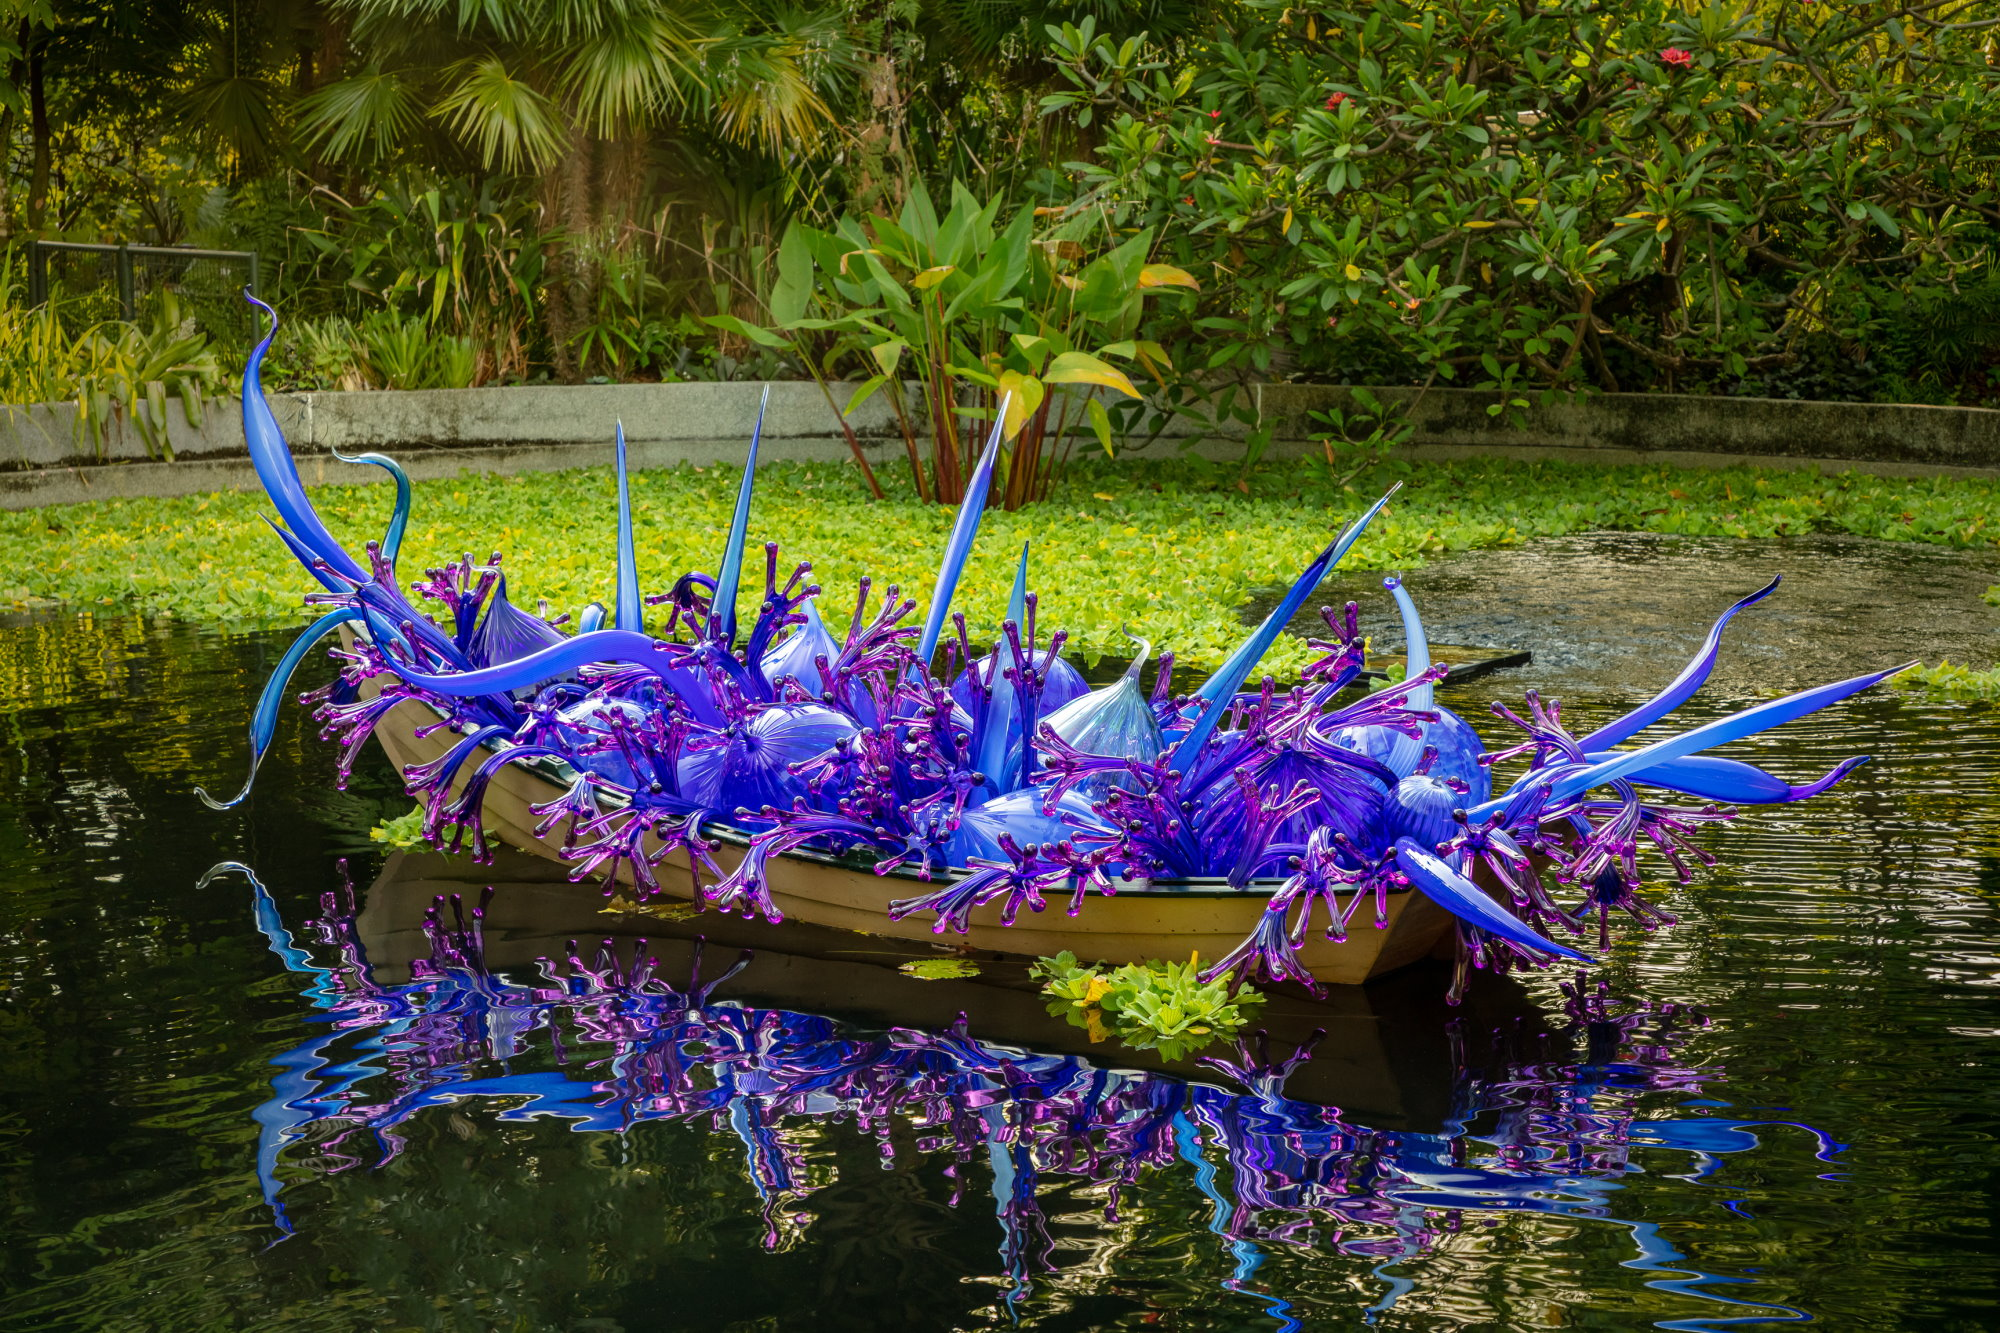 Dale Chihuly: Glass in Bloom Can Now Be Enjoyed Virtually And For Free